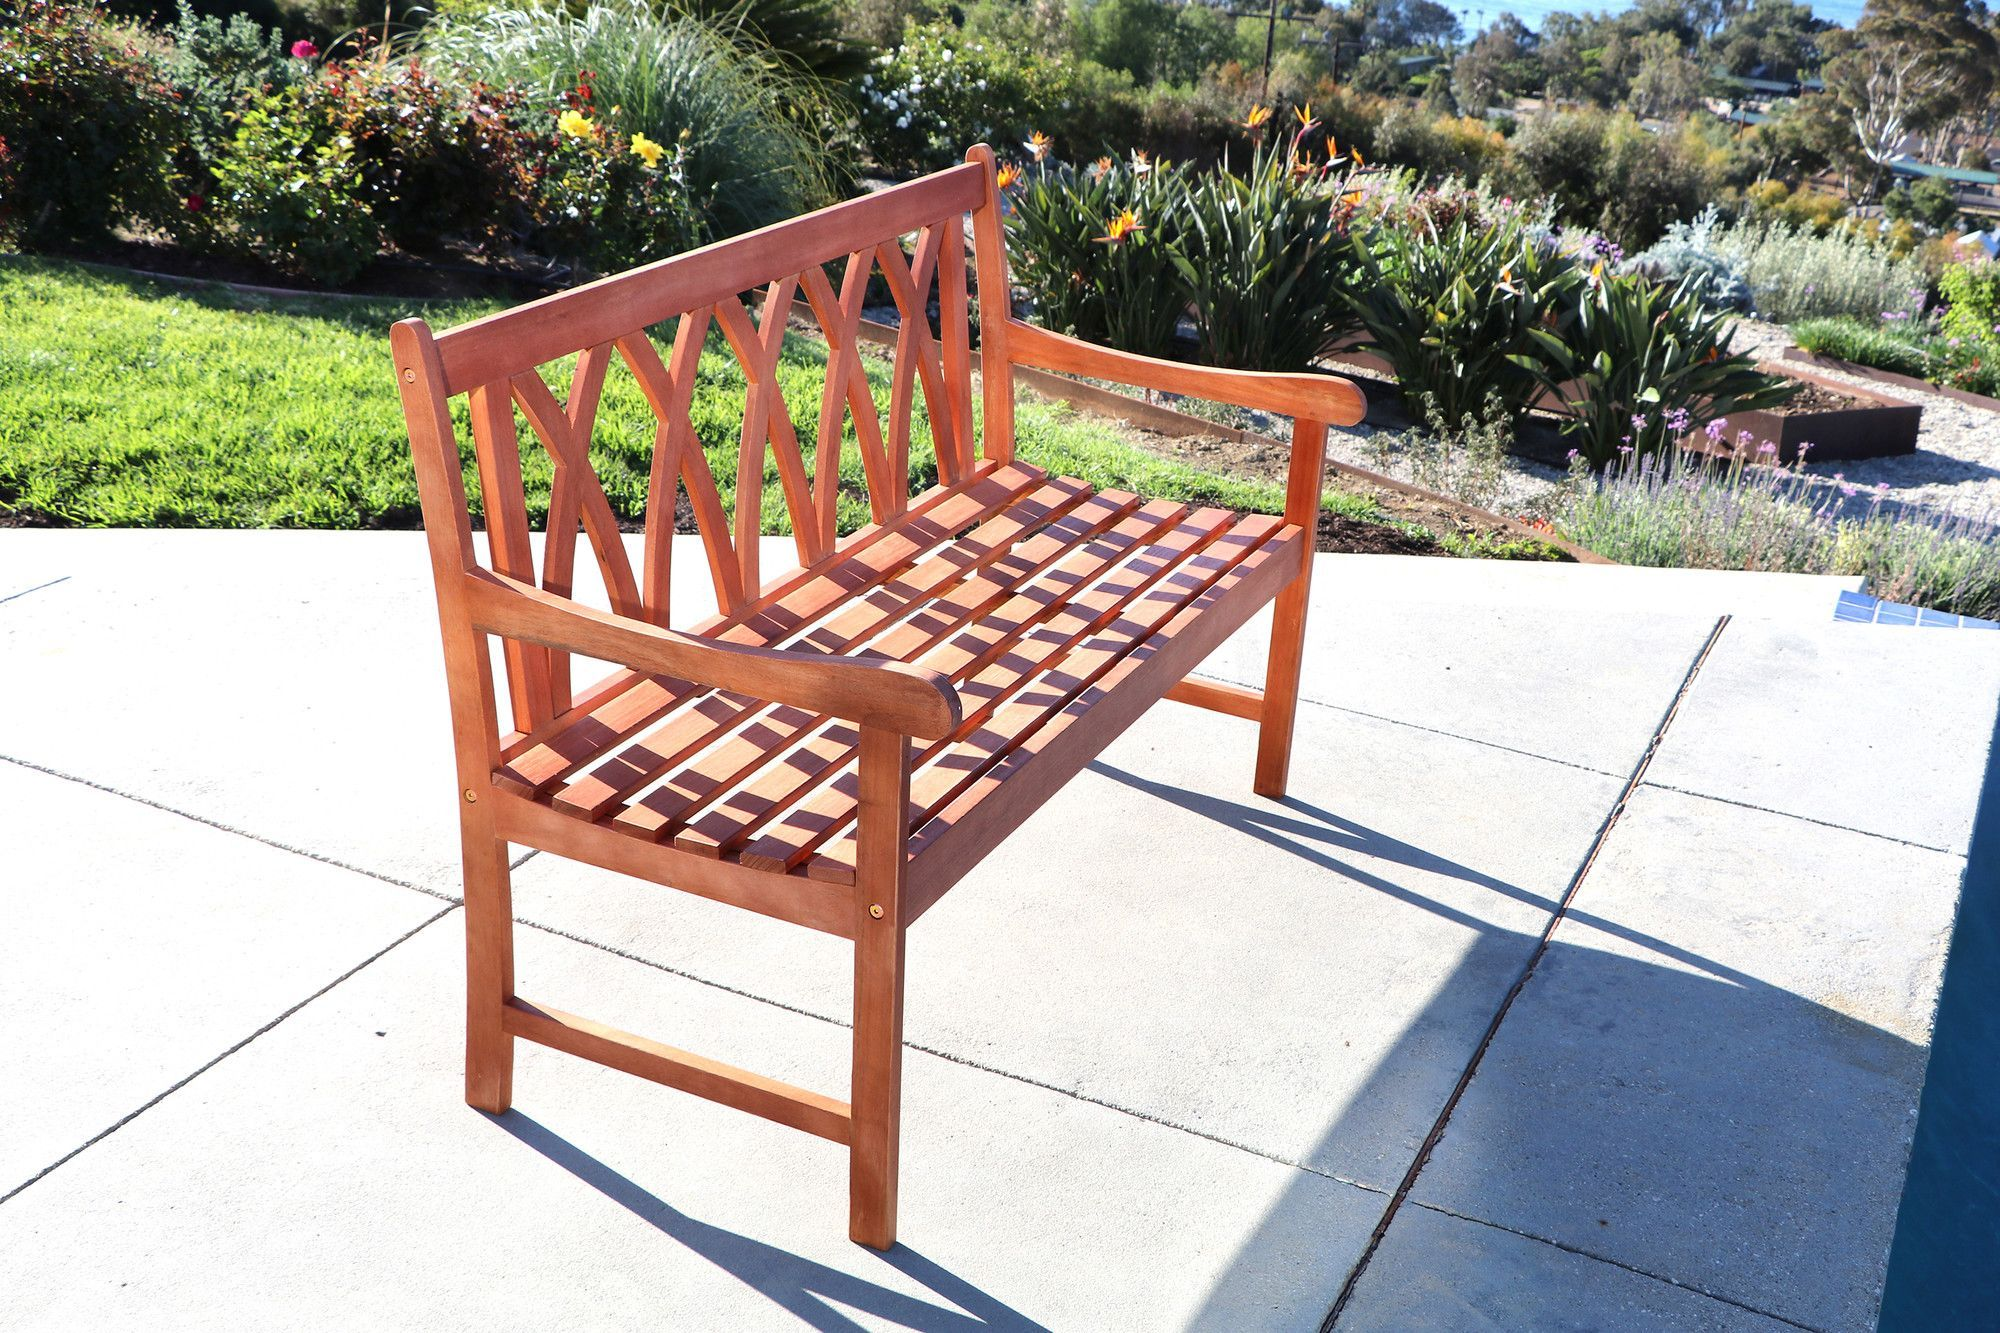 Malibu wood garden bench products pinterest bench and products